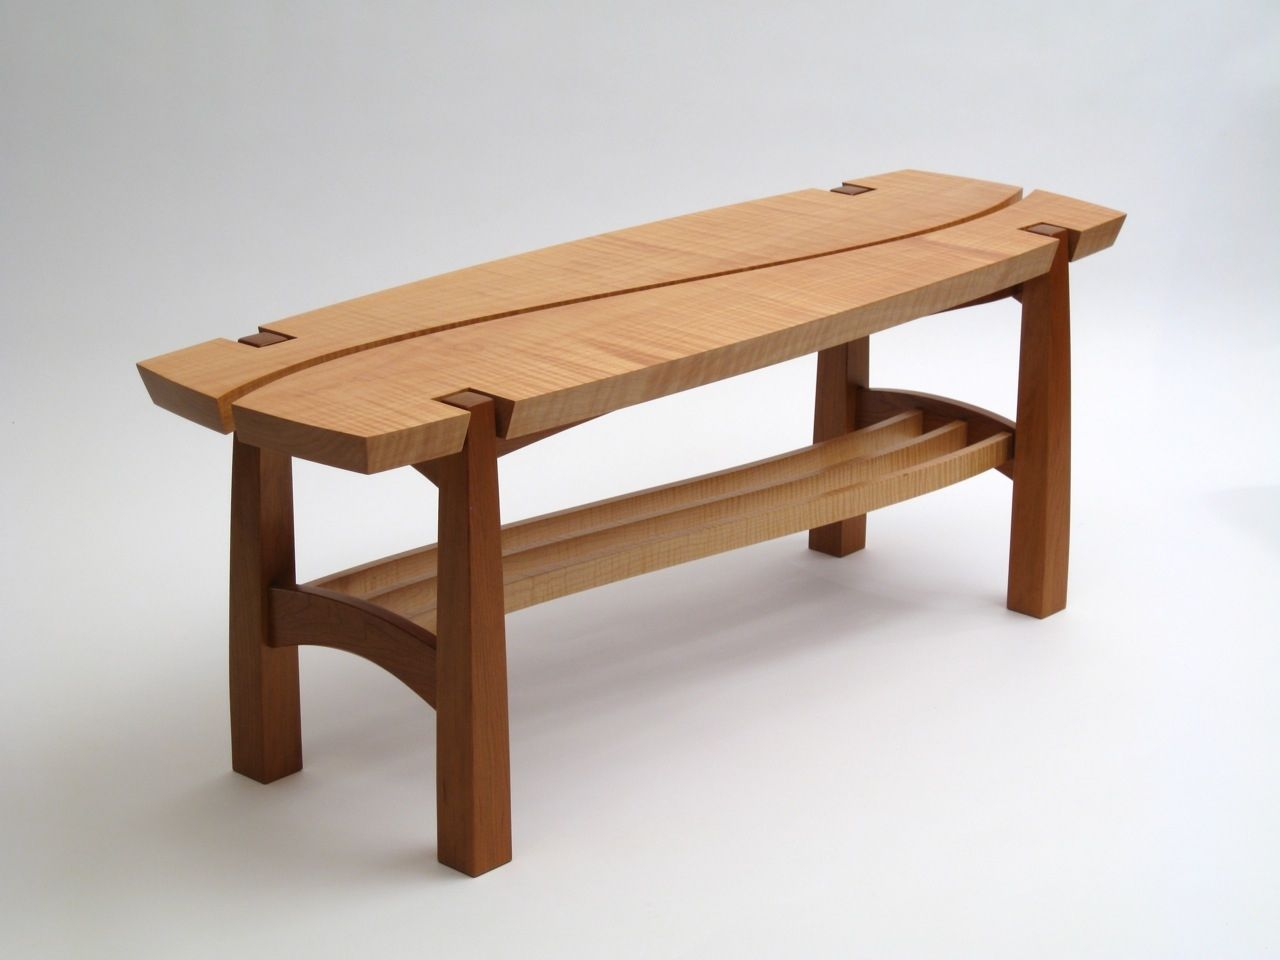 Custom Curly Maple And Cherry Bench By Dogwood Design